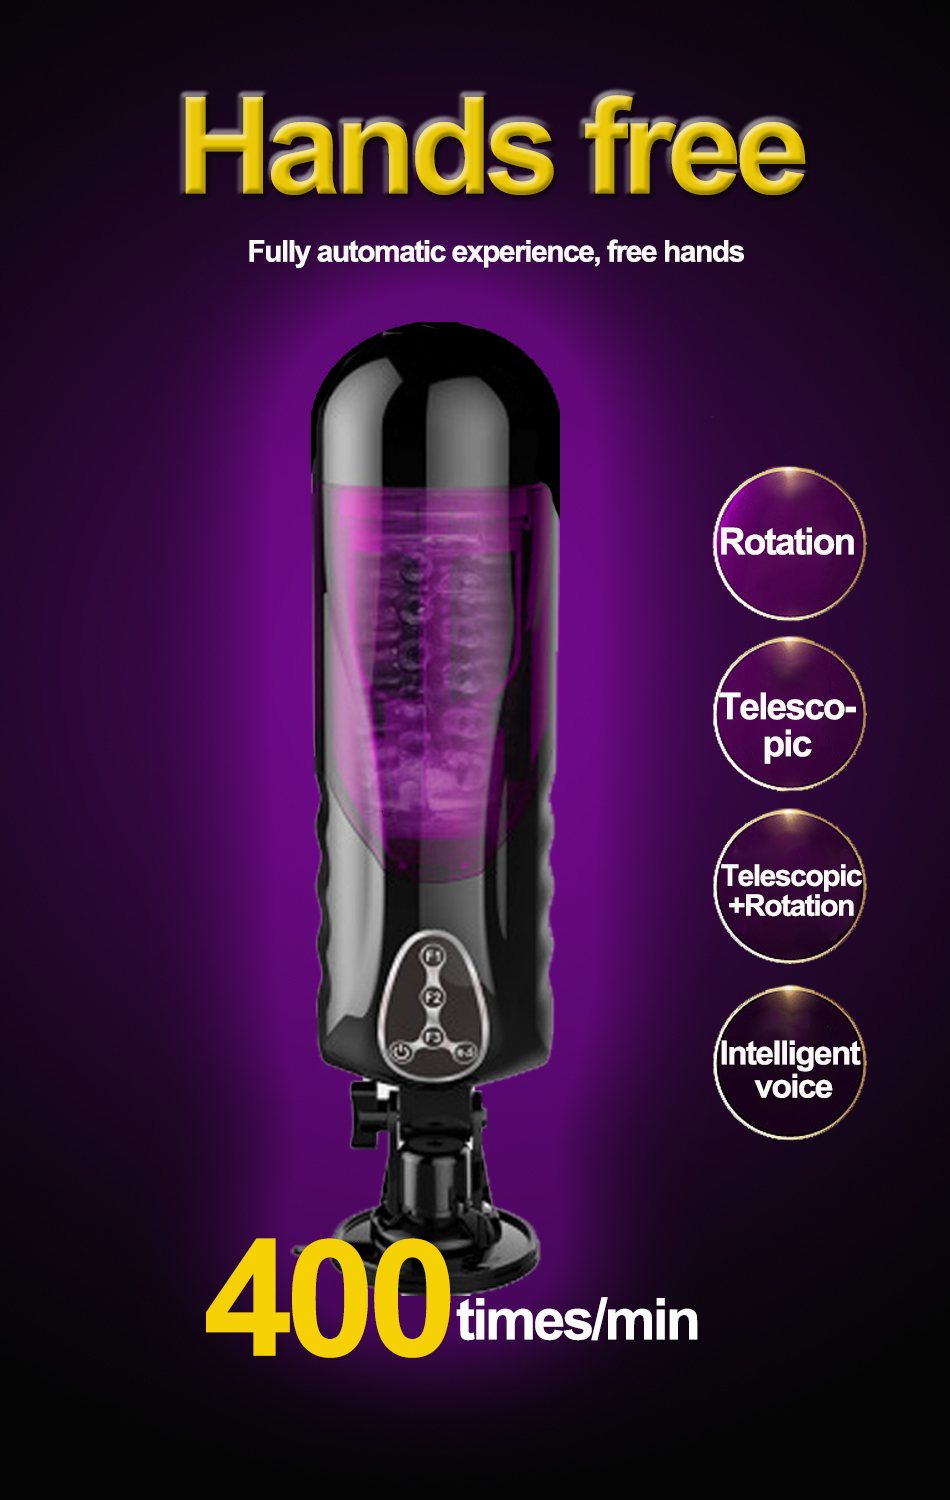 Sex shop products Hand Free Automatic Rotating Voice Sex Machine Vagina Pussy Vibrator Sex Toys for Men Male Masturbators